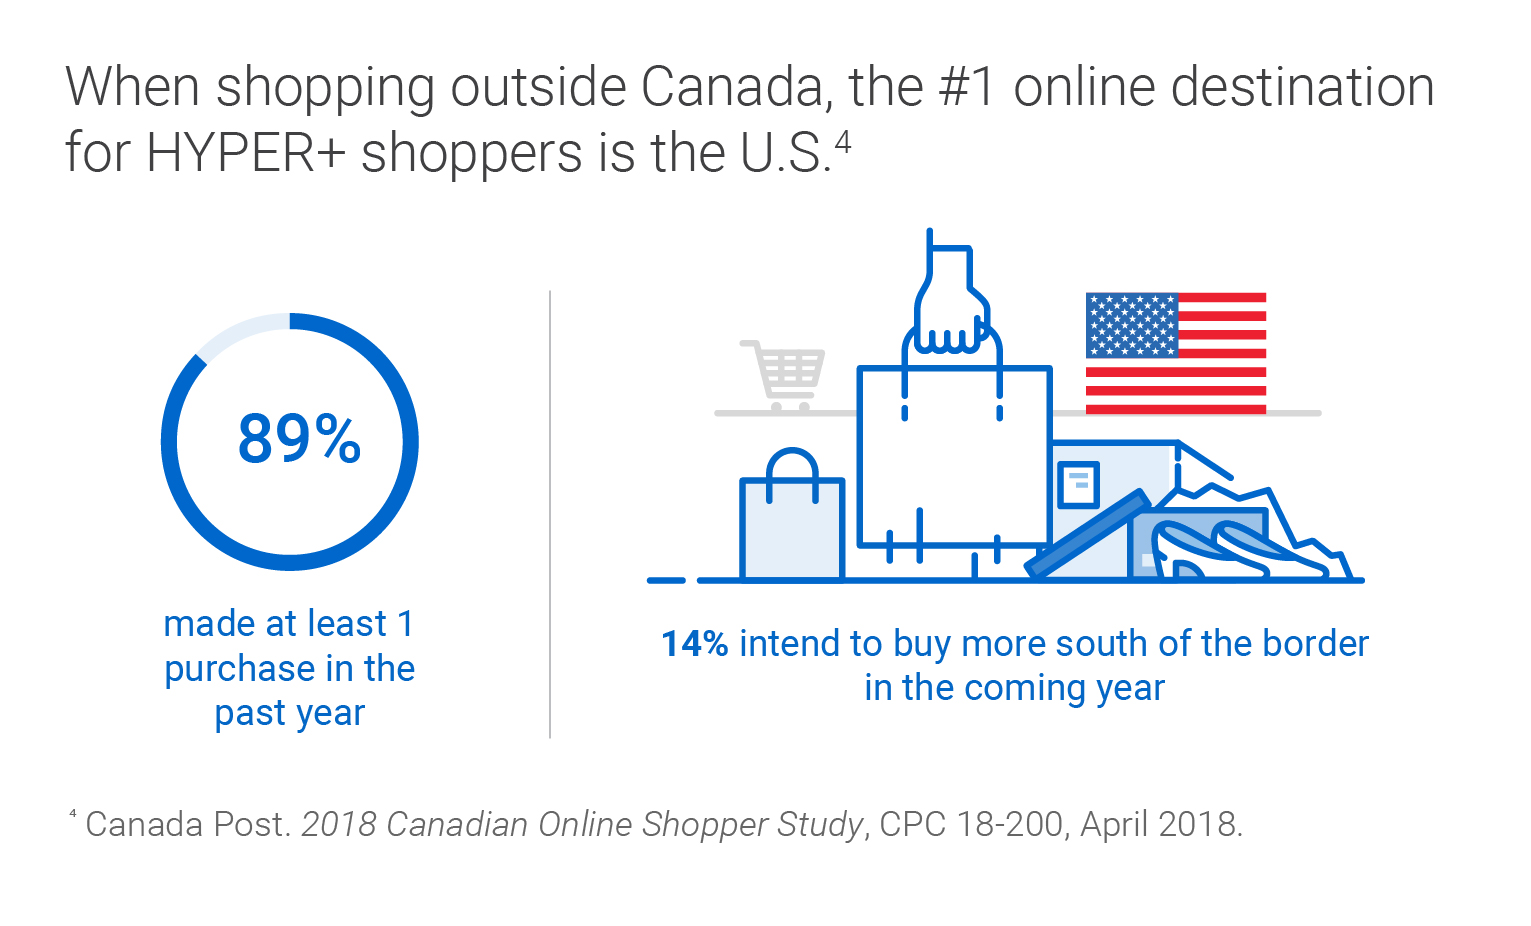 "When shopping outside Canada, the #1 online destination for HYPER+ shoppers in the U.S. (source: Canada Post. ""2018 Canadian Online Shopper Study"", CPC 18-200, April 2018.). 89 per cent made at least 1 purchase in the past year. 14 per cent intend to buy more south of the border in the coming year."